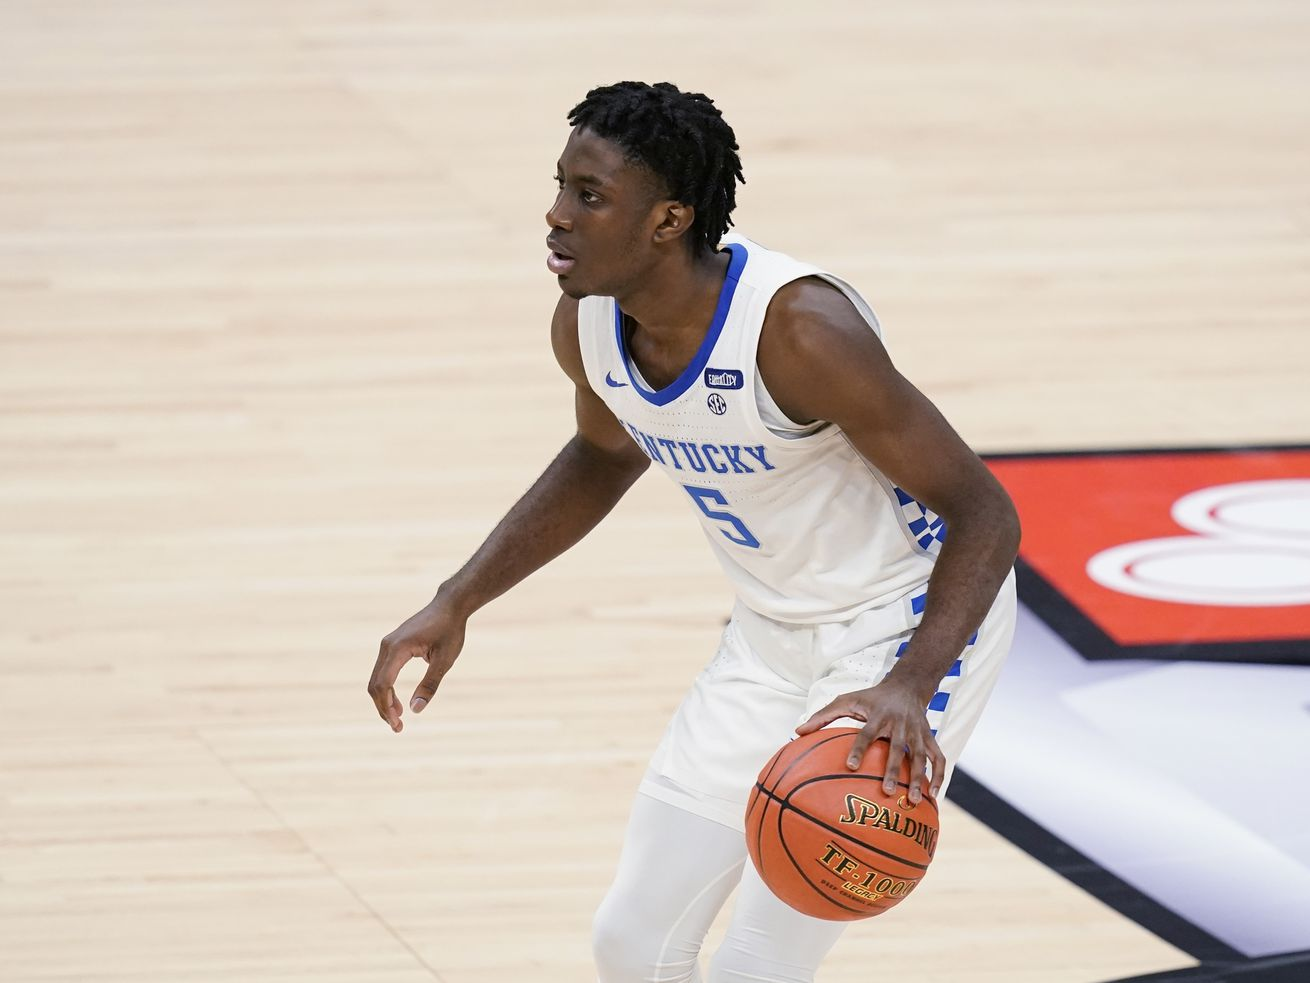 Kentucky says freshman guard Clarke died following a car accident in Los Angeles. He was 19.